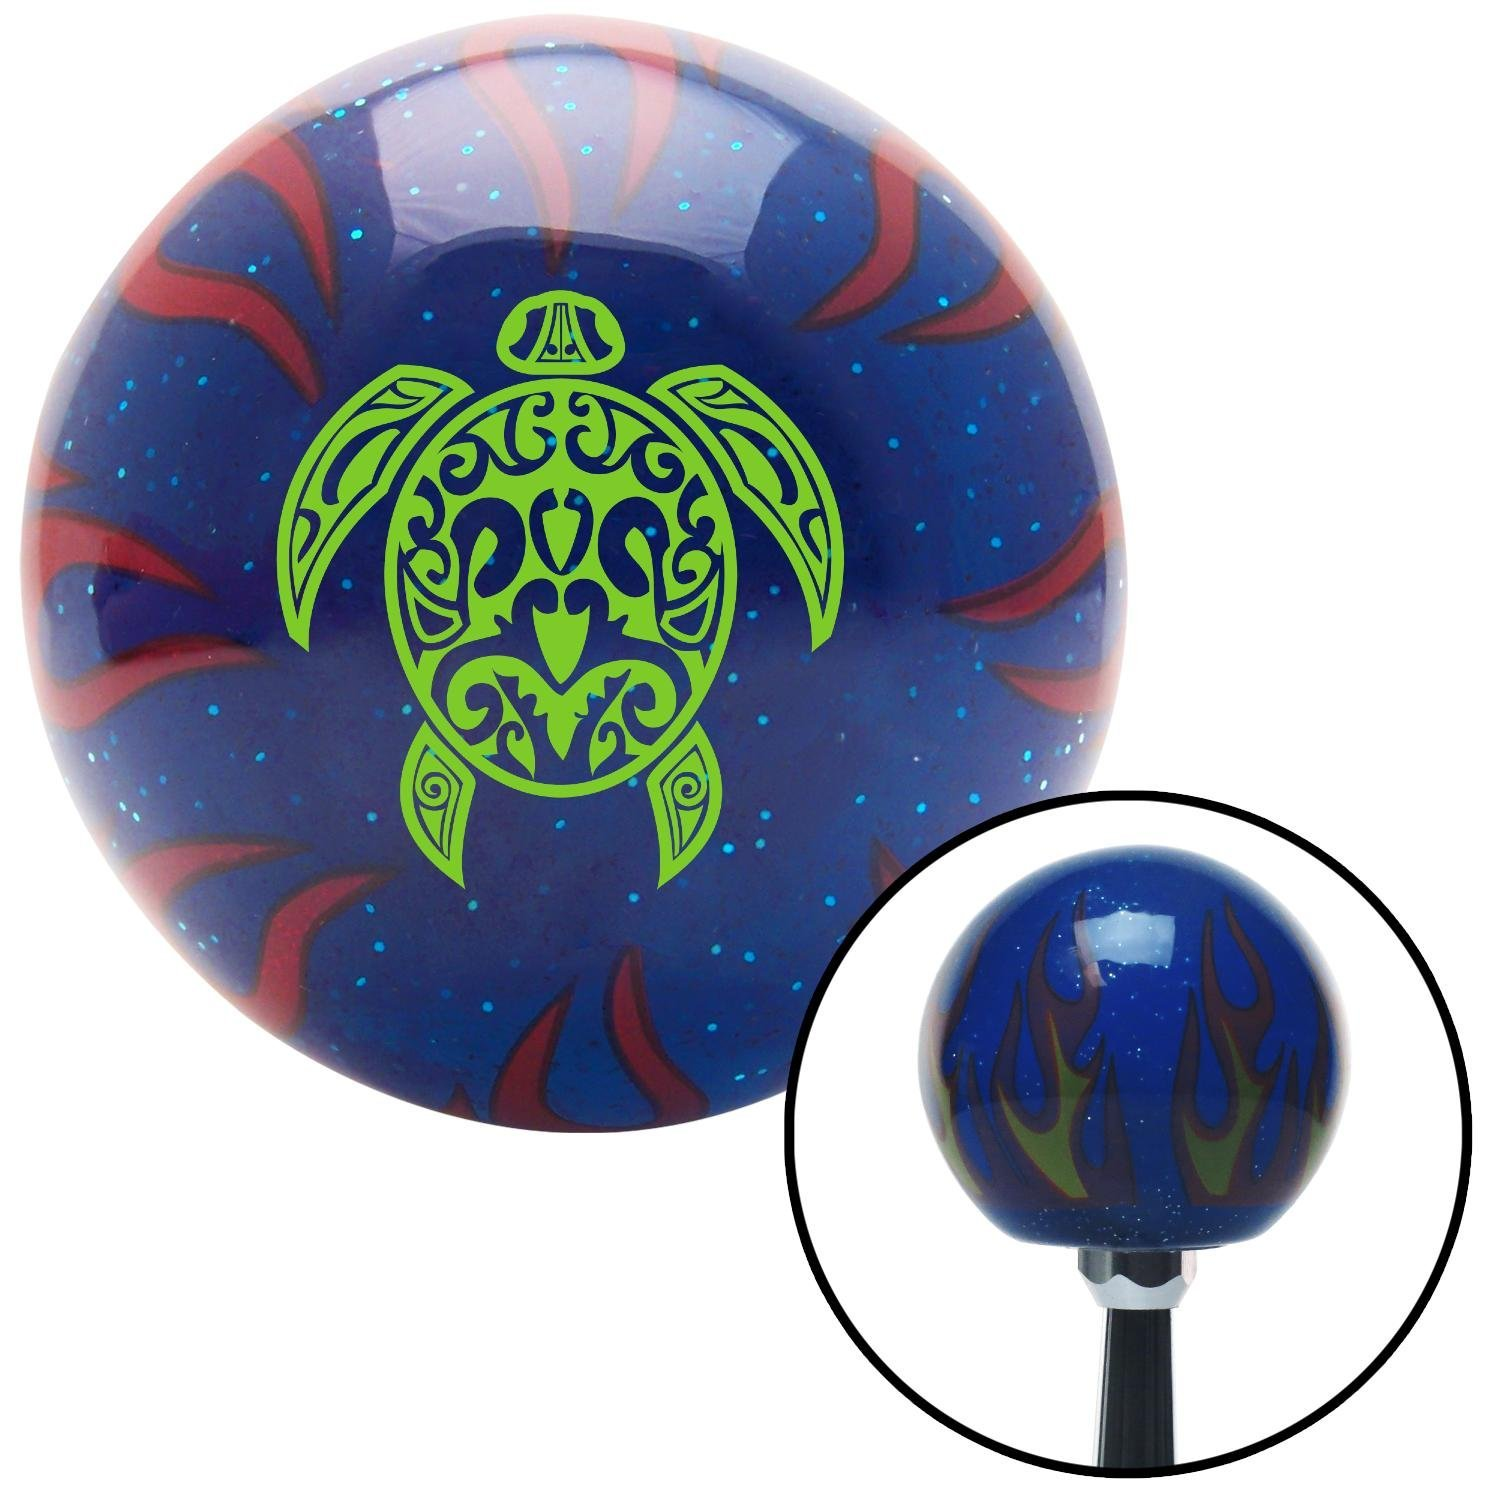 Green Giant Turtle American Shifter 249415 Blue Flame Metal Flake Shift Knob with M16 x 1.5 Insert